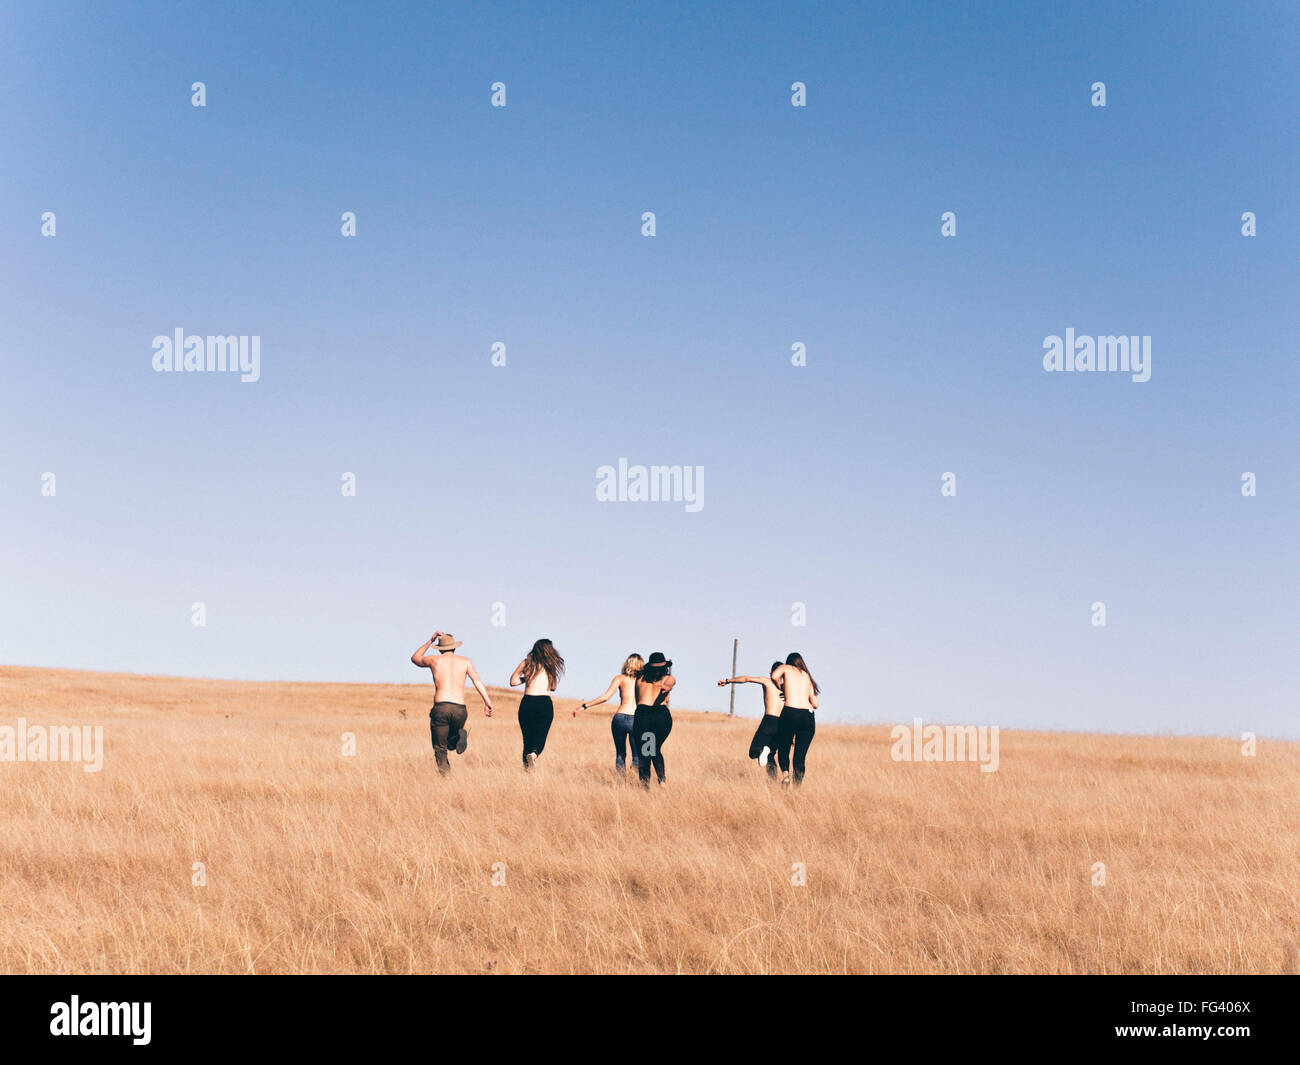 Rear View Of Men And Women Running On Field Against Clear Sky - Stock Image